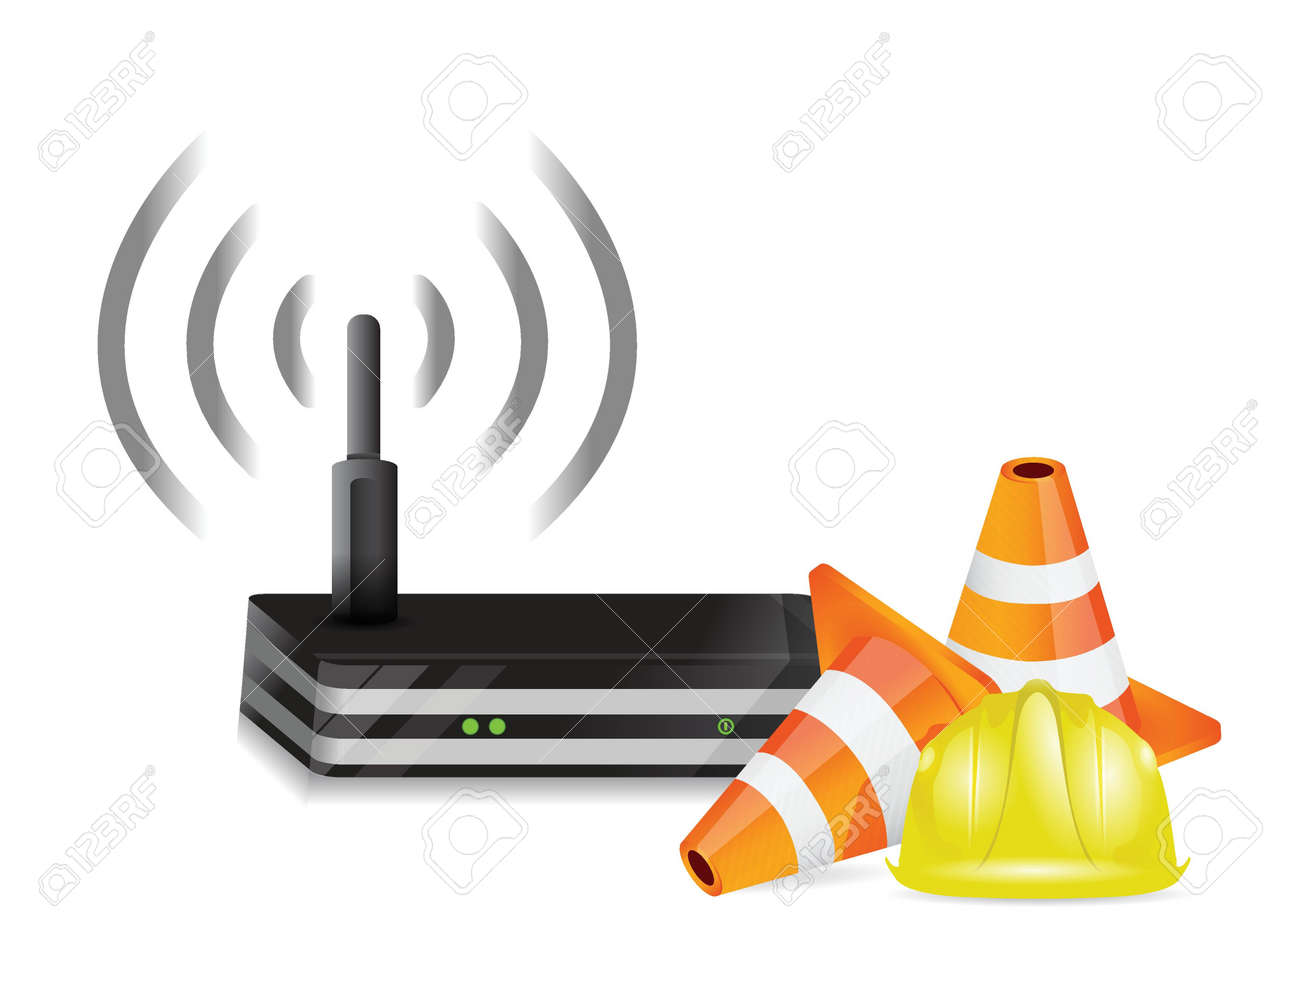 router and protection barrier illustration design over white Stock Vector - 18806117